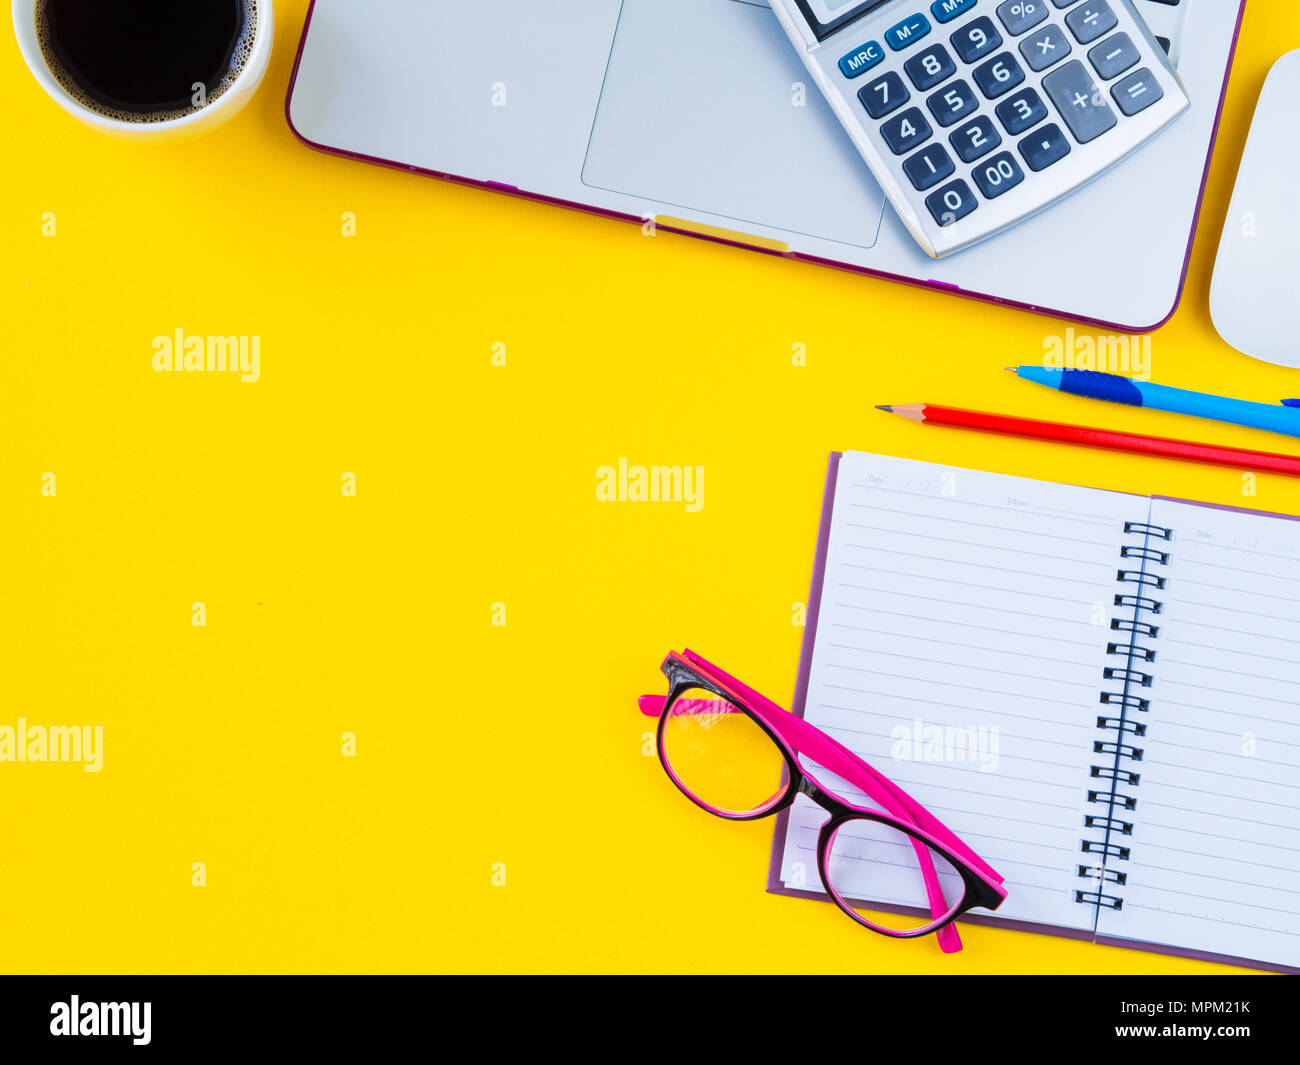 Flat lay top view office table stock photo (edit now) 667791892.